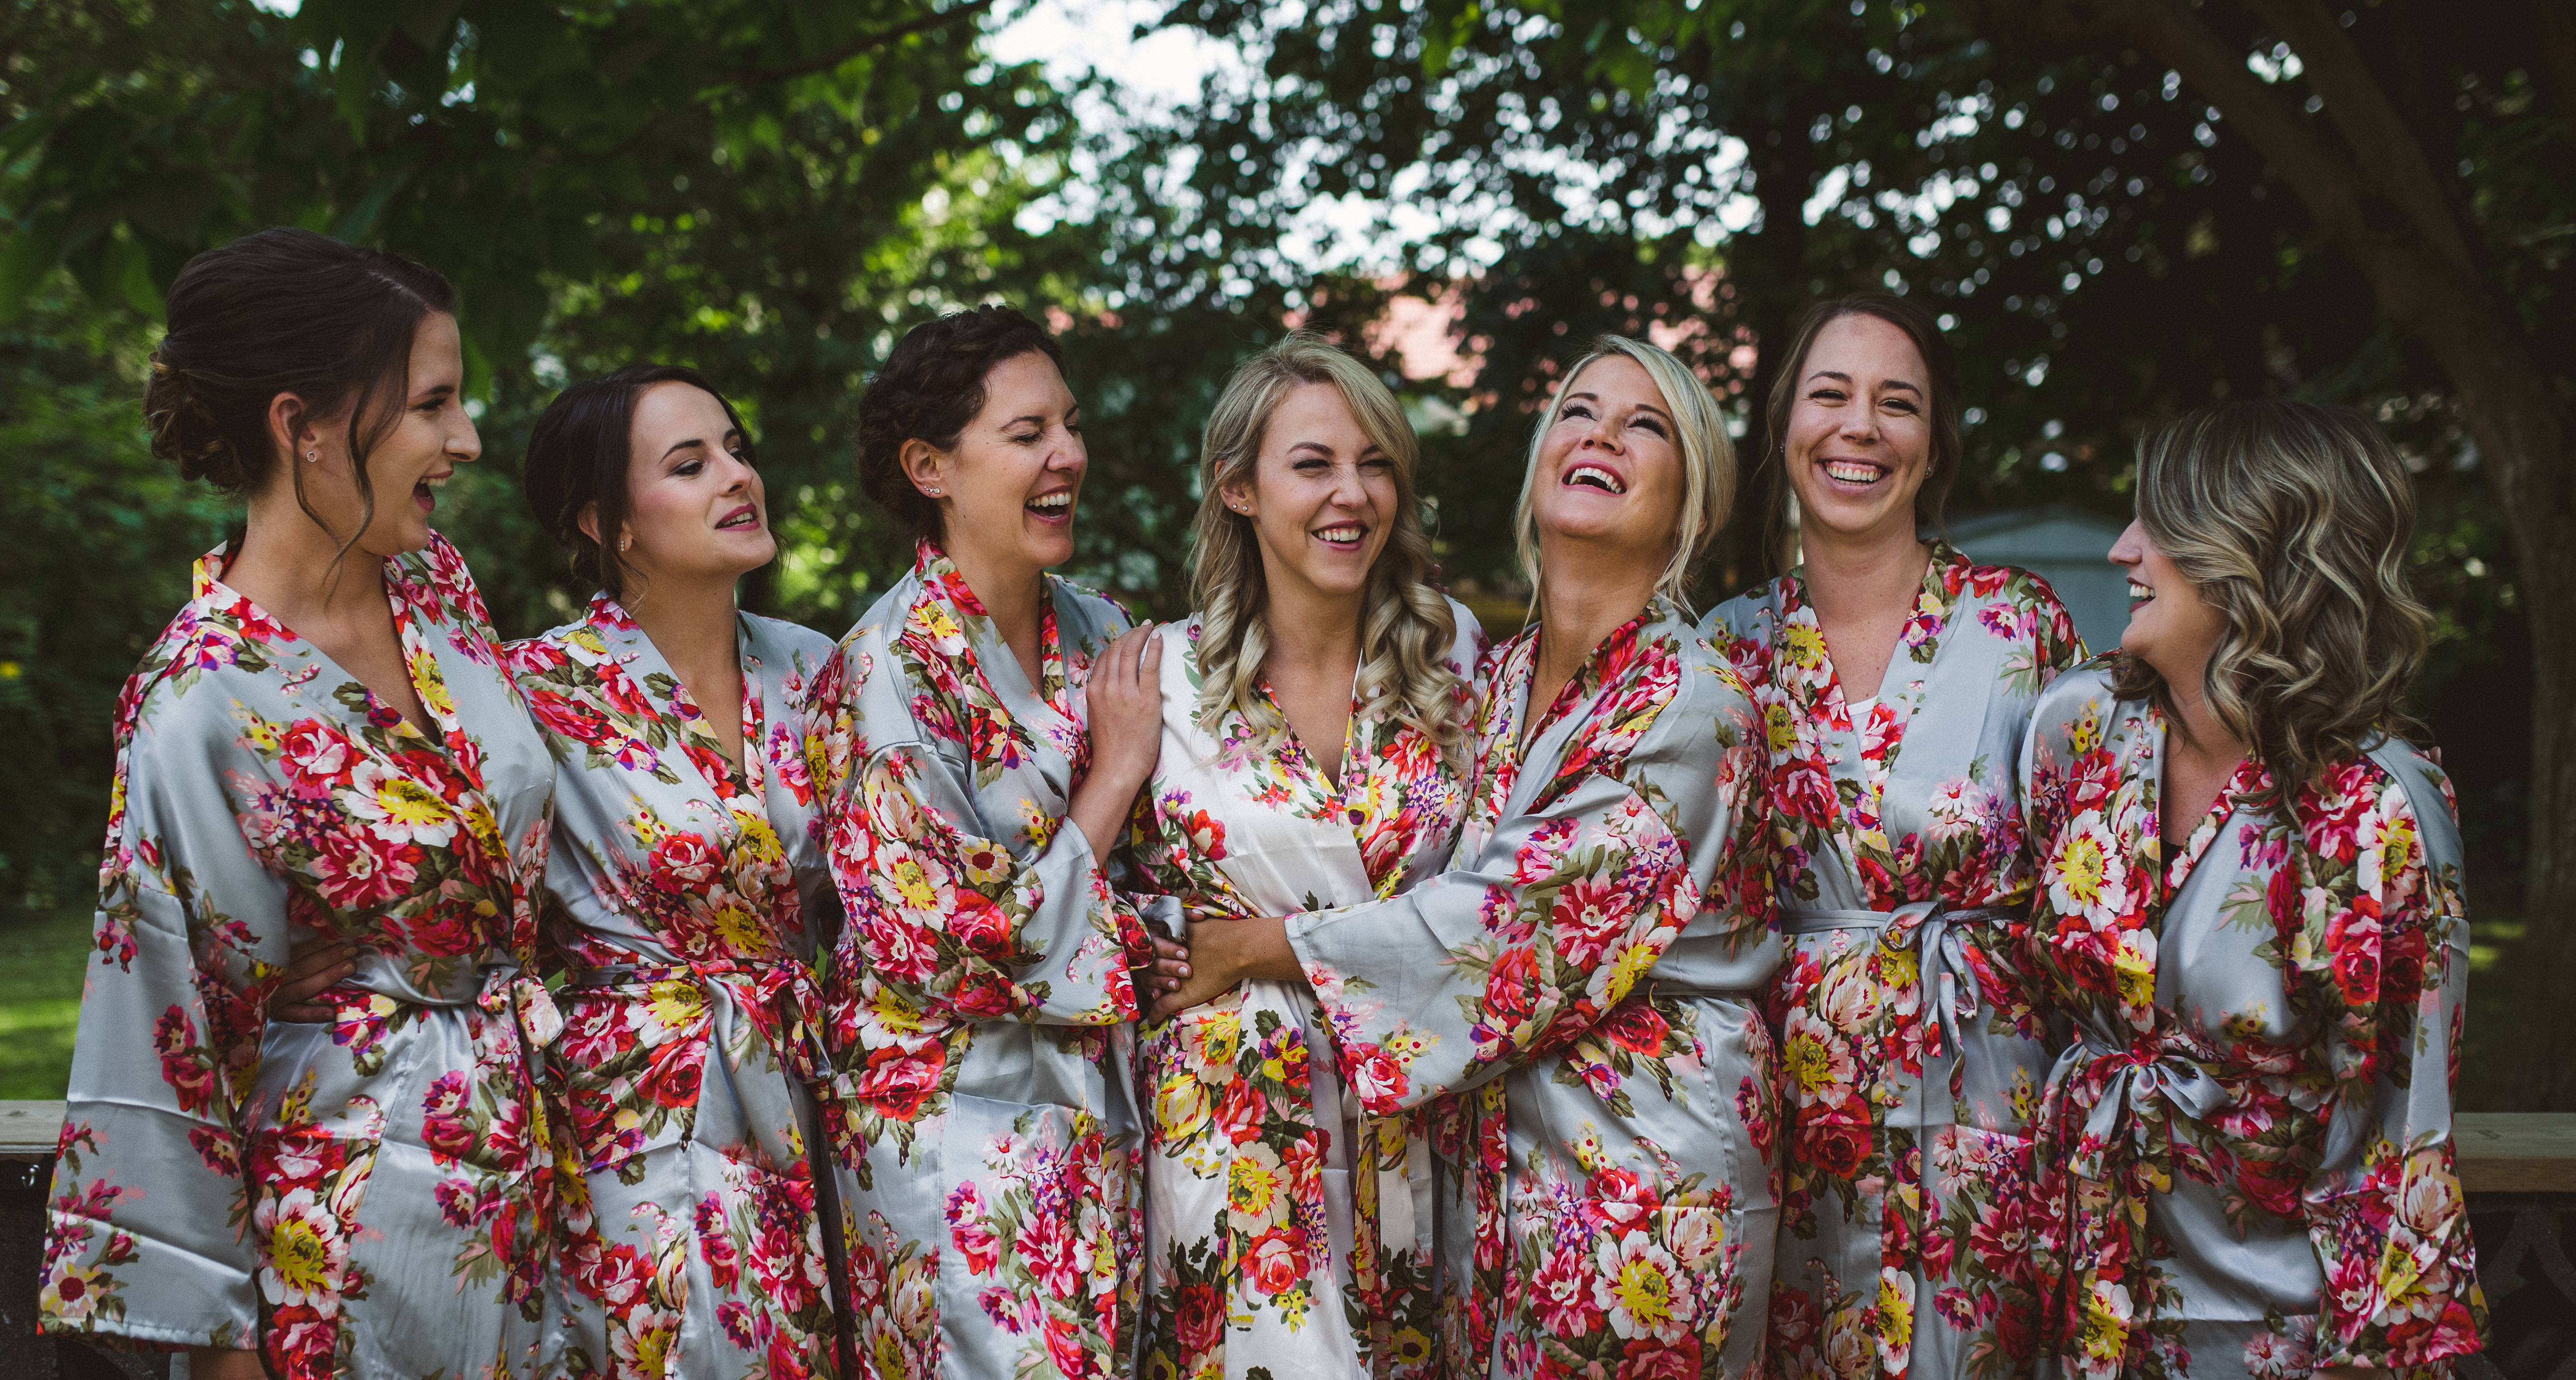 Bride and bridesmaids huddle in pretty matching floral robes for a group photo before getting ready for the wedding day